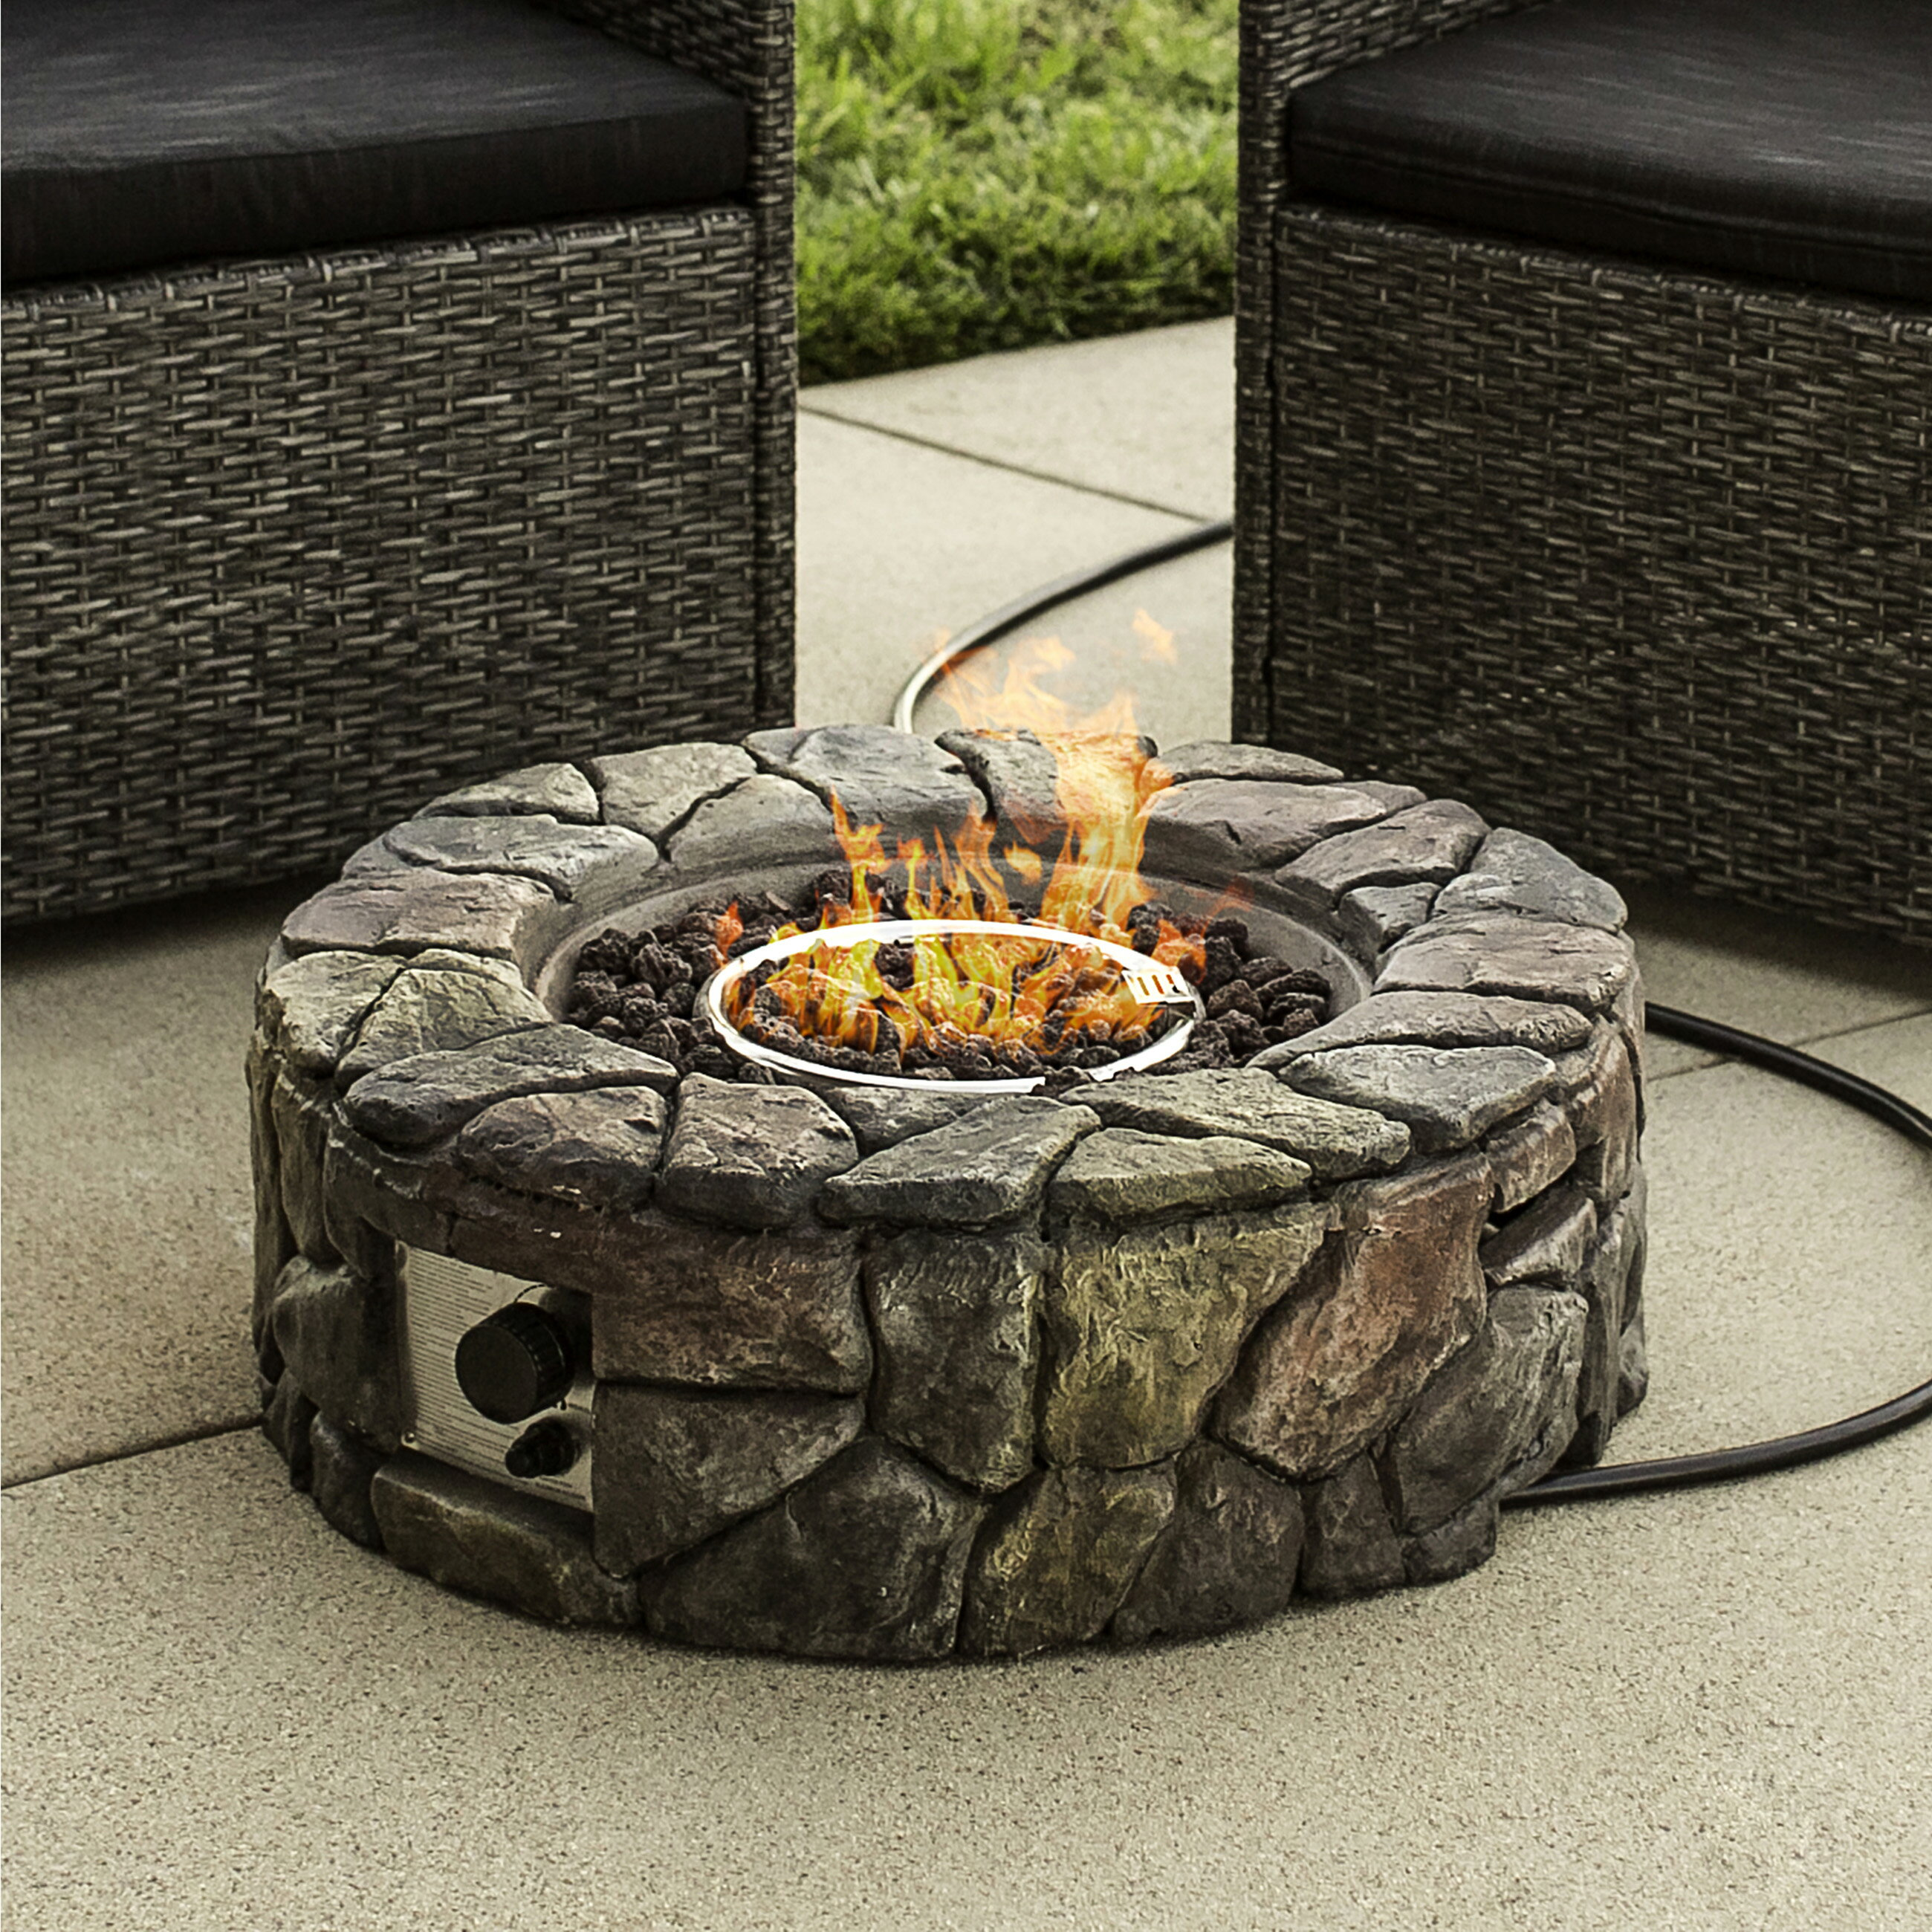 Cool Best Choice Products Home Outdoor Patio Natural Stone Gas Fire Pit For Backyard Garden Multicolor Download Free Architecture Designs Grimeyleaguecom